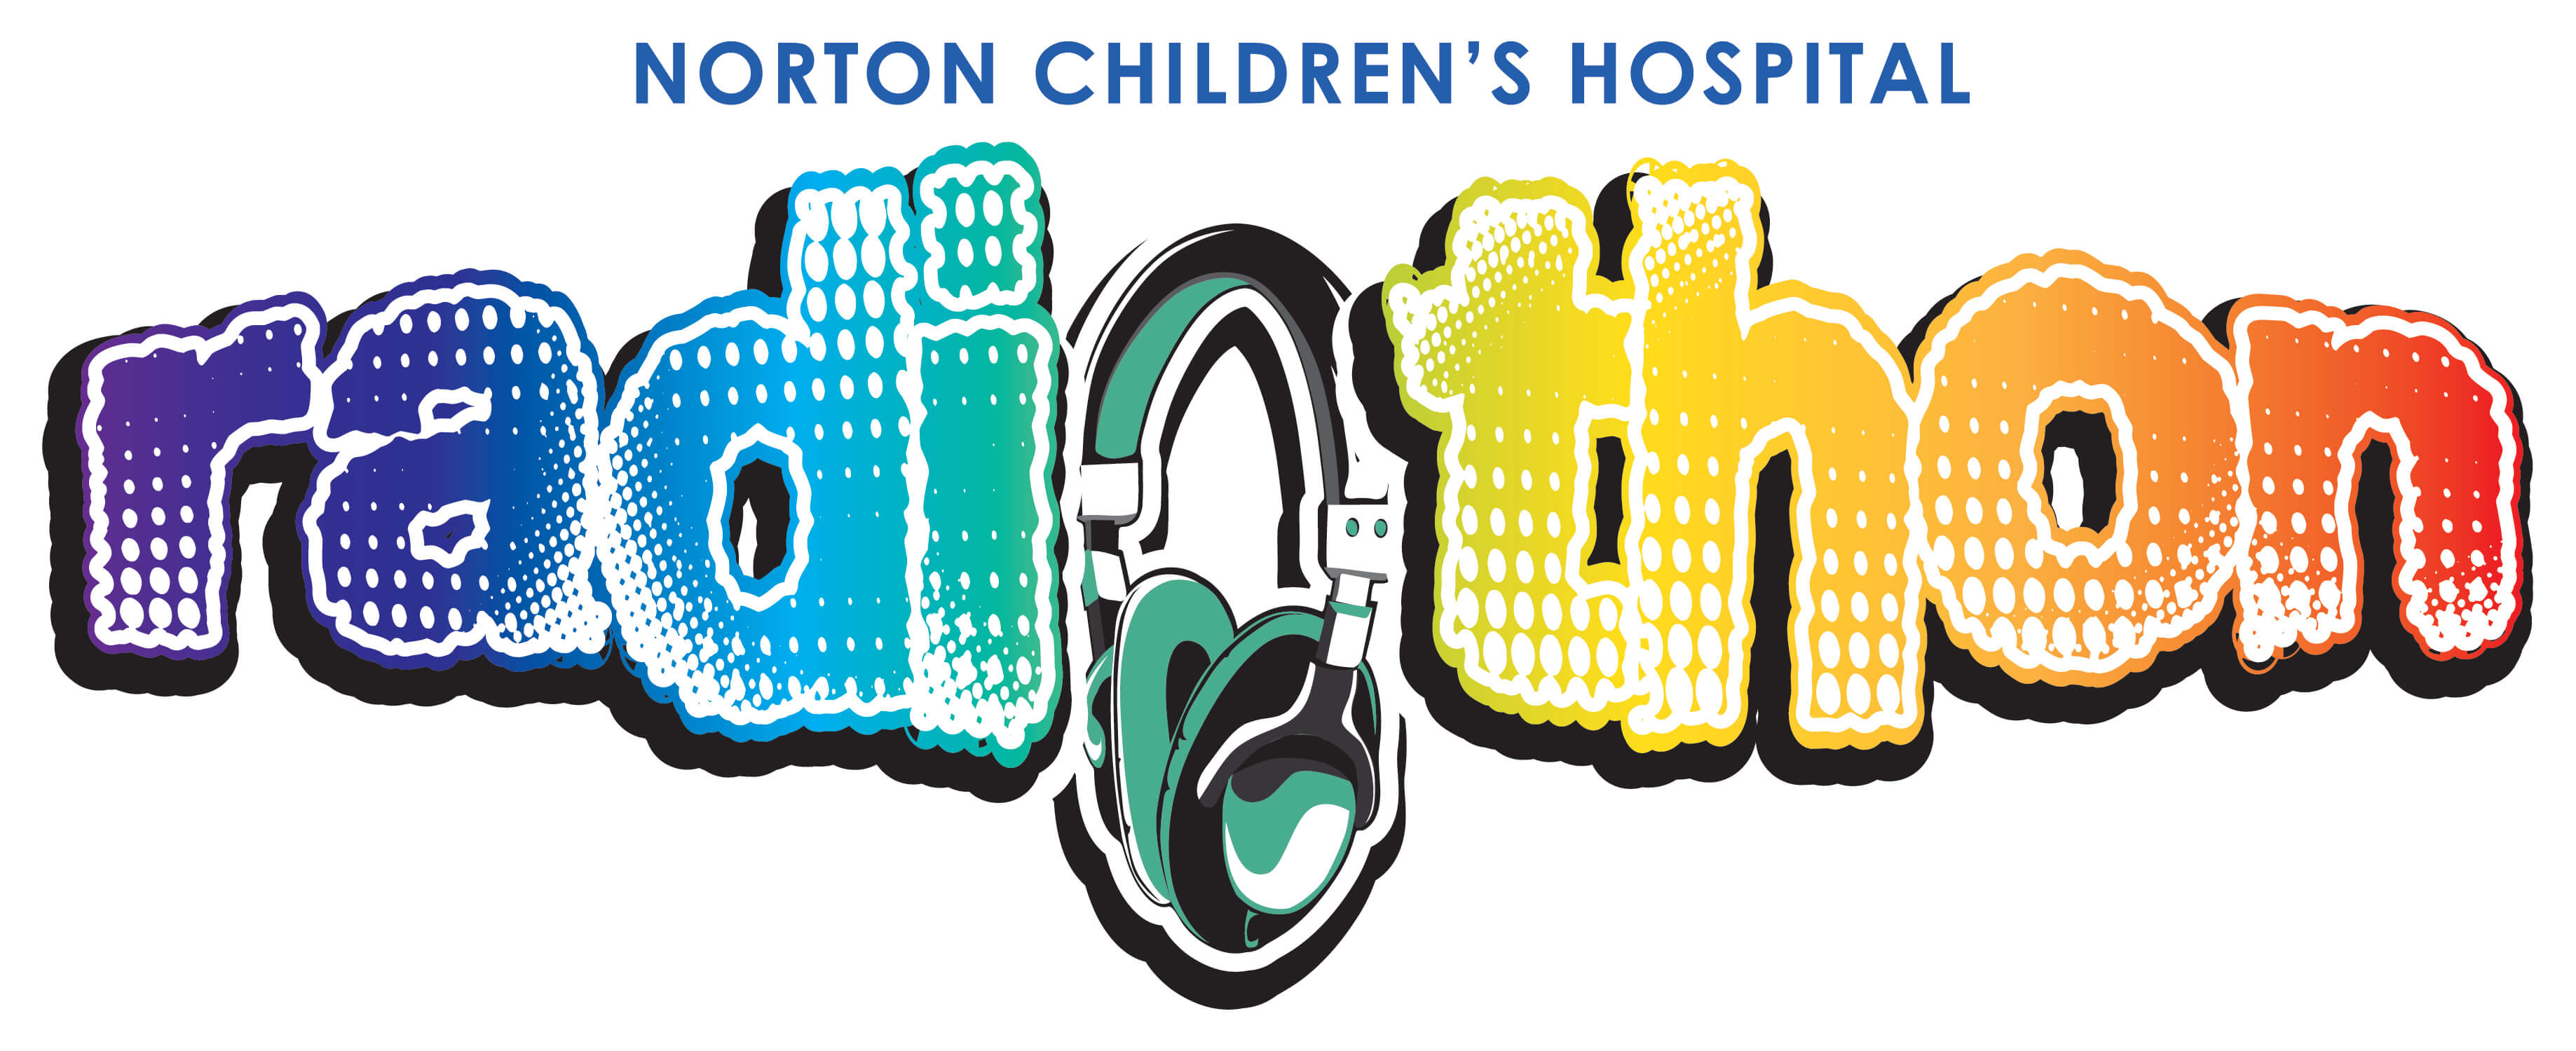 Norton Children's Hospital Radiothon 2017